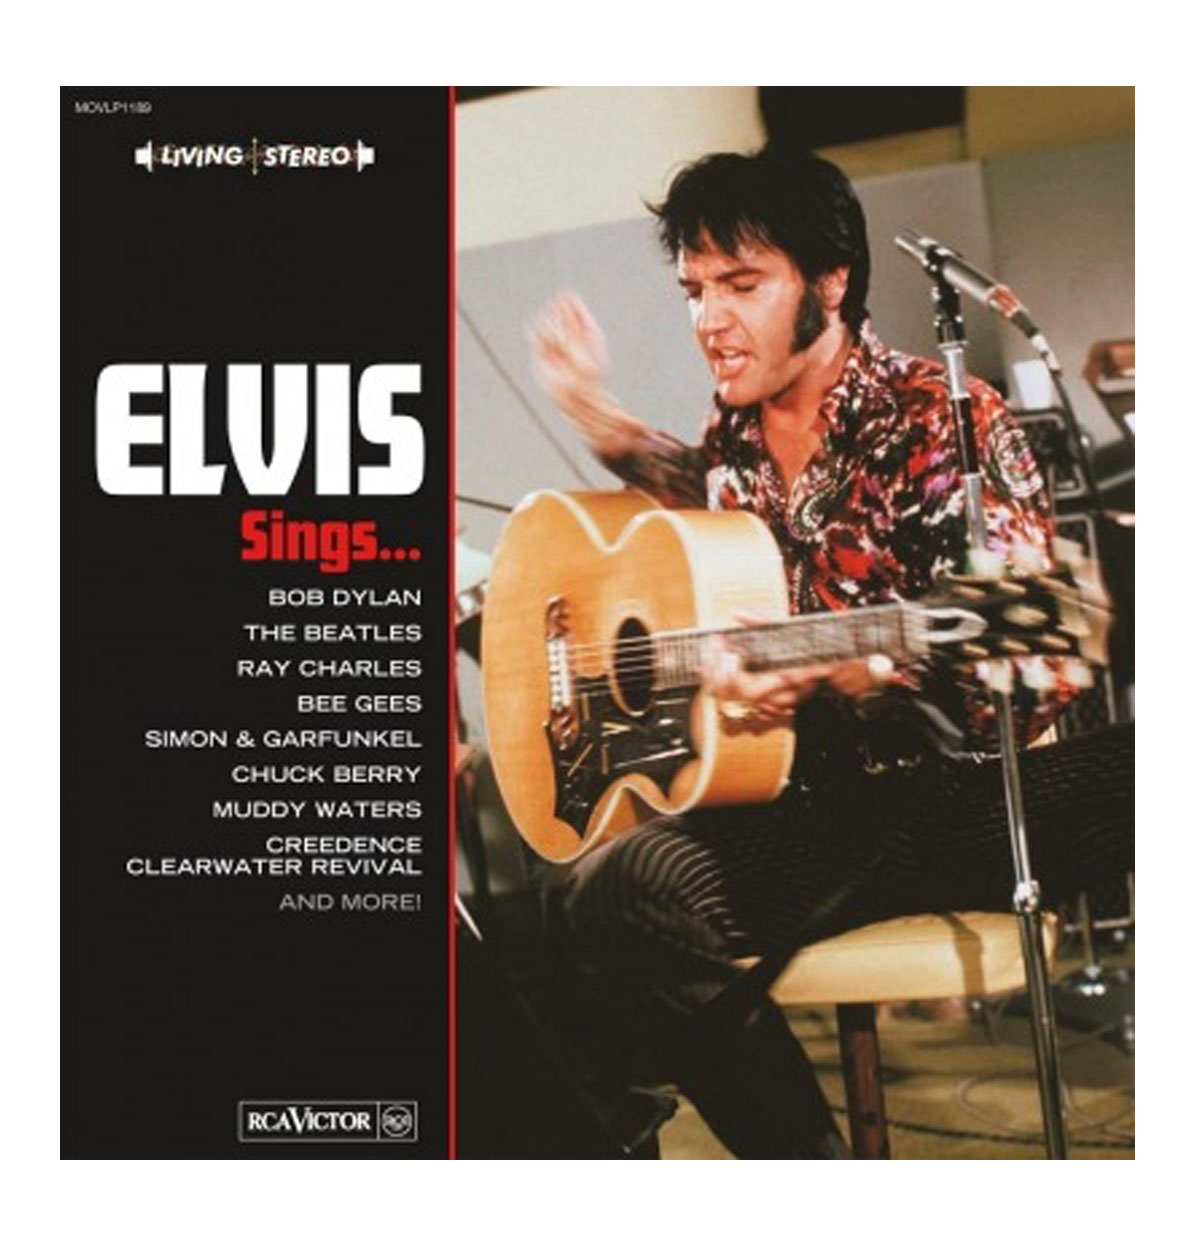 Elvis Presley - Elvis Sings... 2-LP